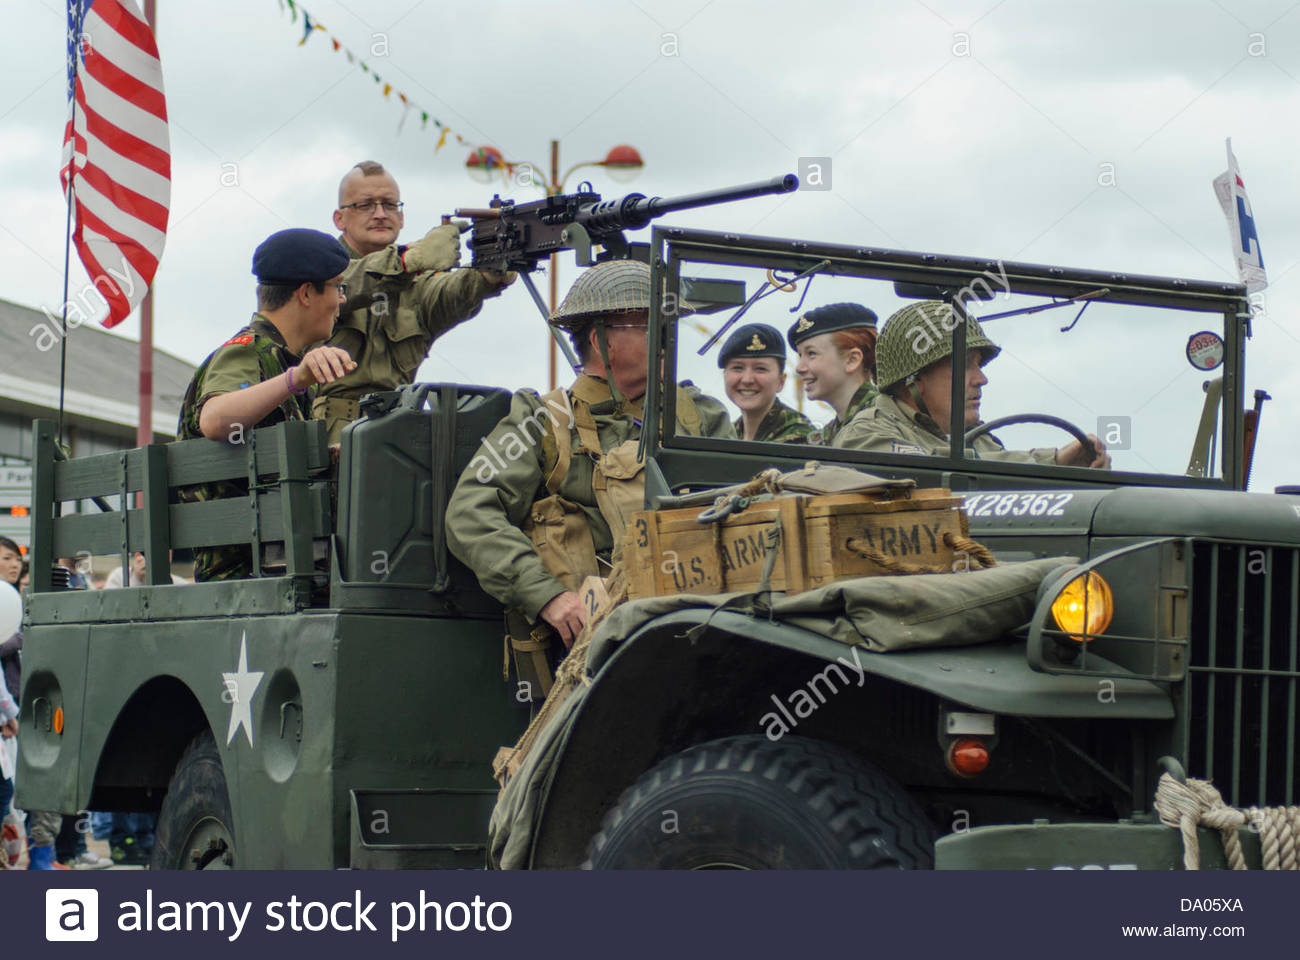 Livingston, UK. 29th June 2013. WW2 re-enactment vehicle in the Armed Forces day parade in Livingston on Saturday, - Stock Image